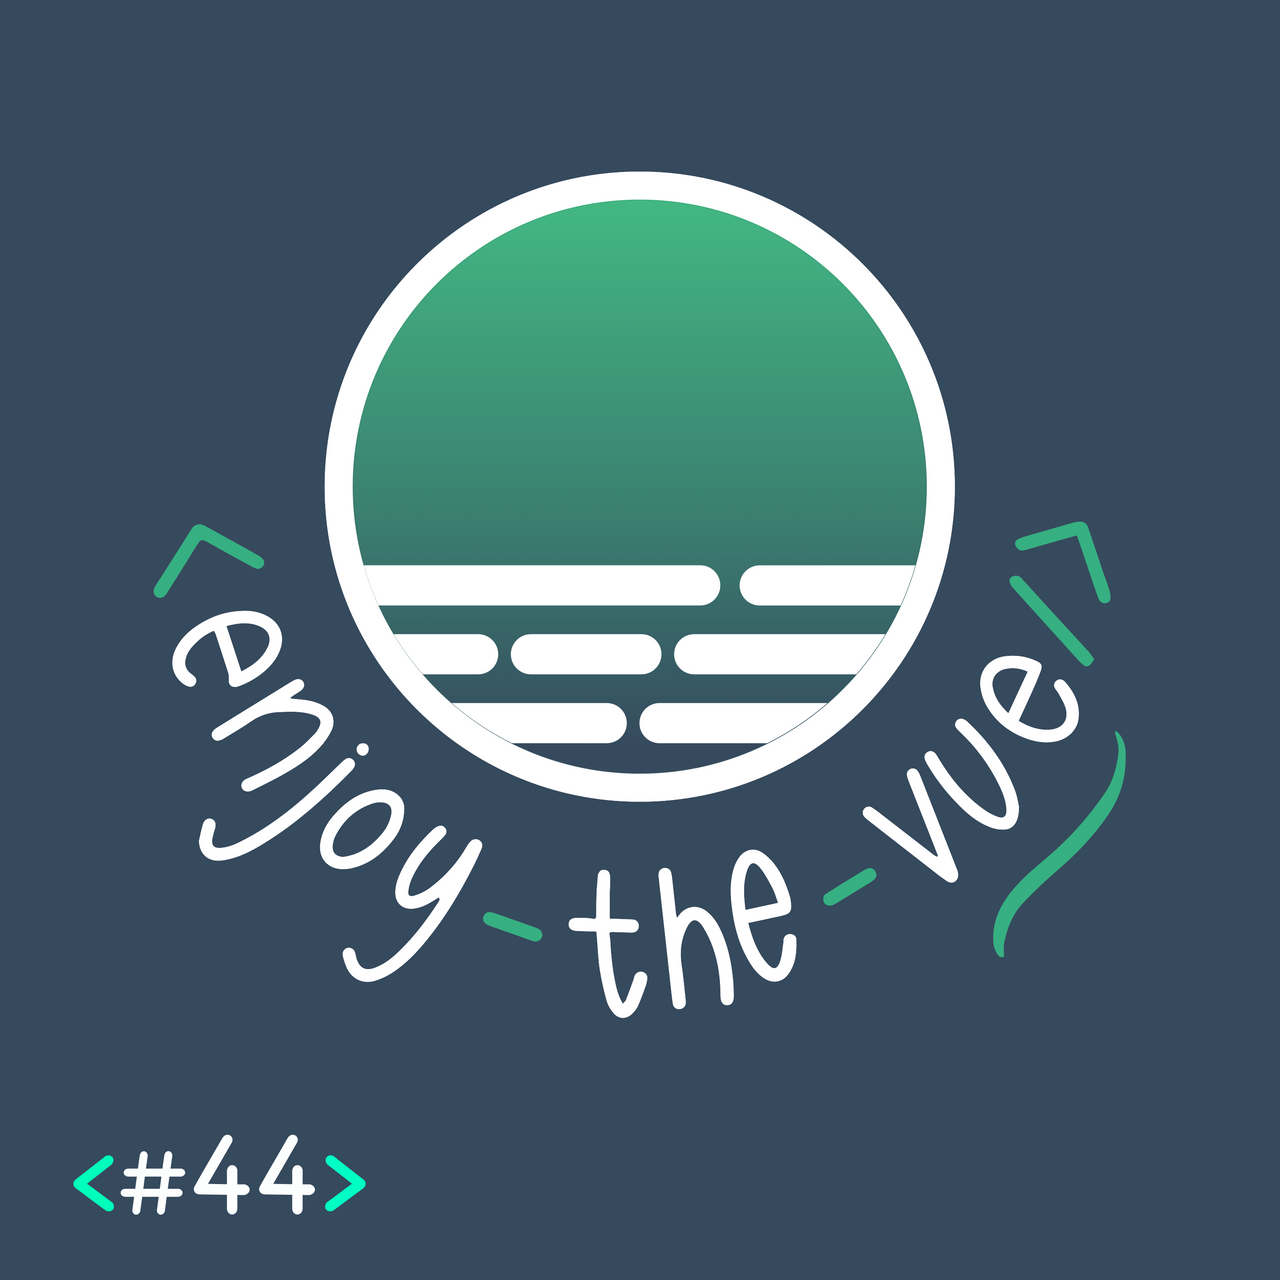 Enjoy the Vue! (#44)